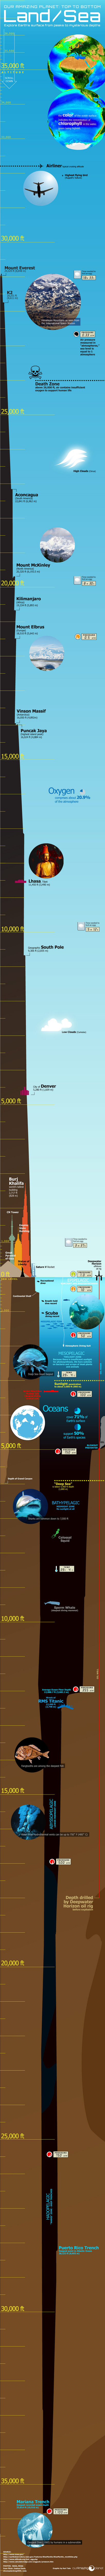 tallest to deepest info graphic